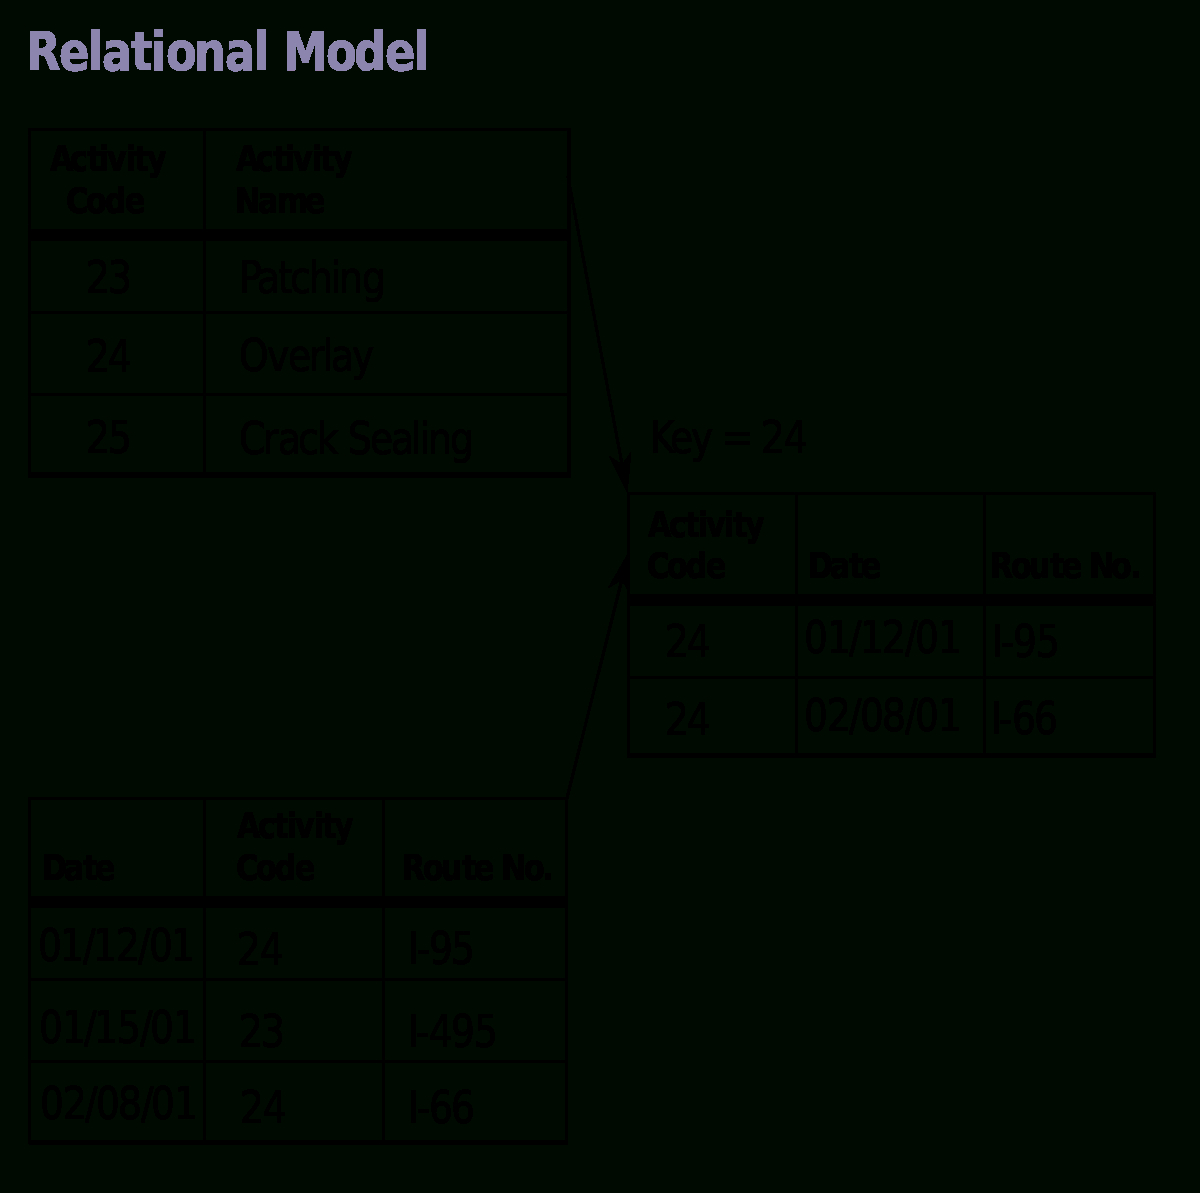 Relational Model - Simple English Wikipedia, The Free with regard to Relational Database Model Diagram